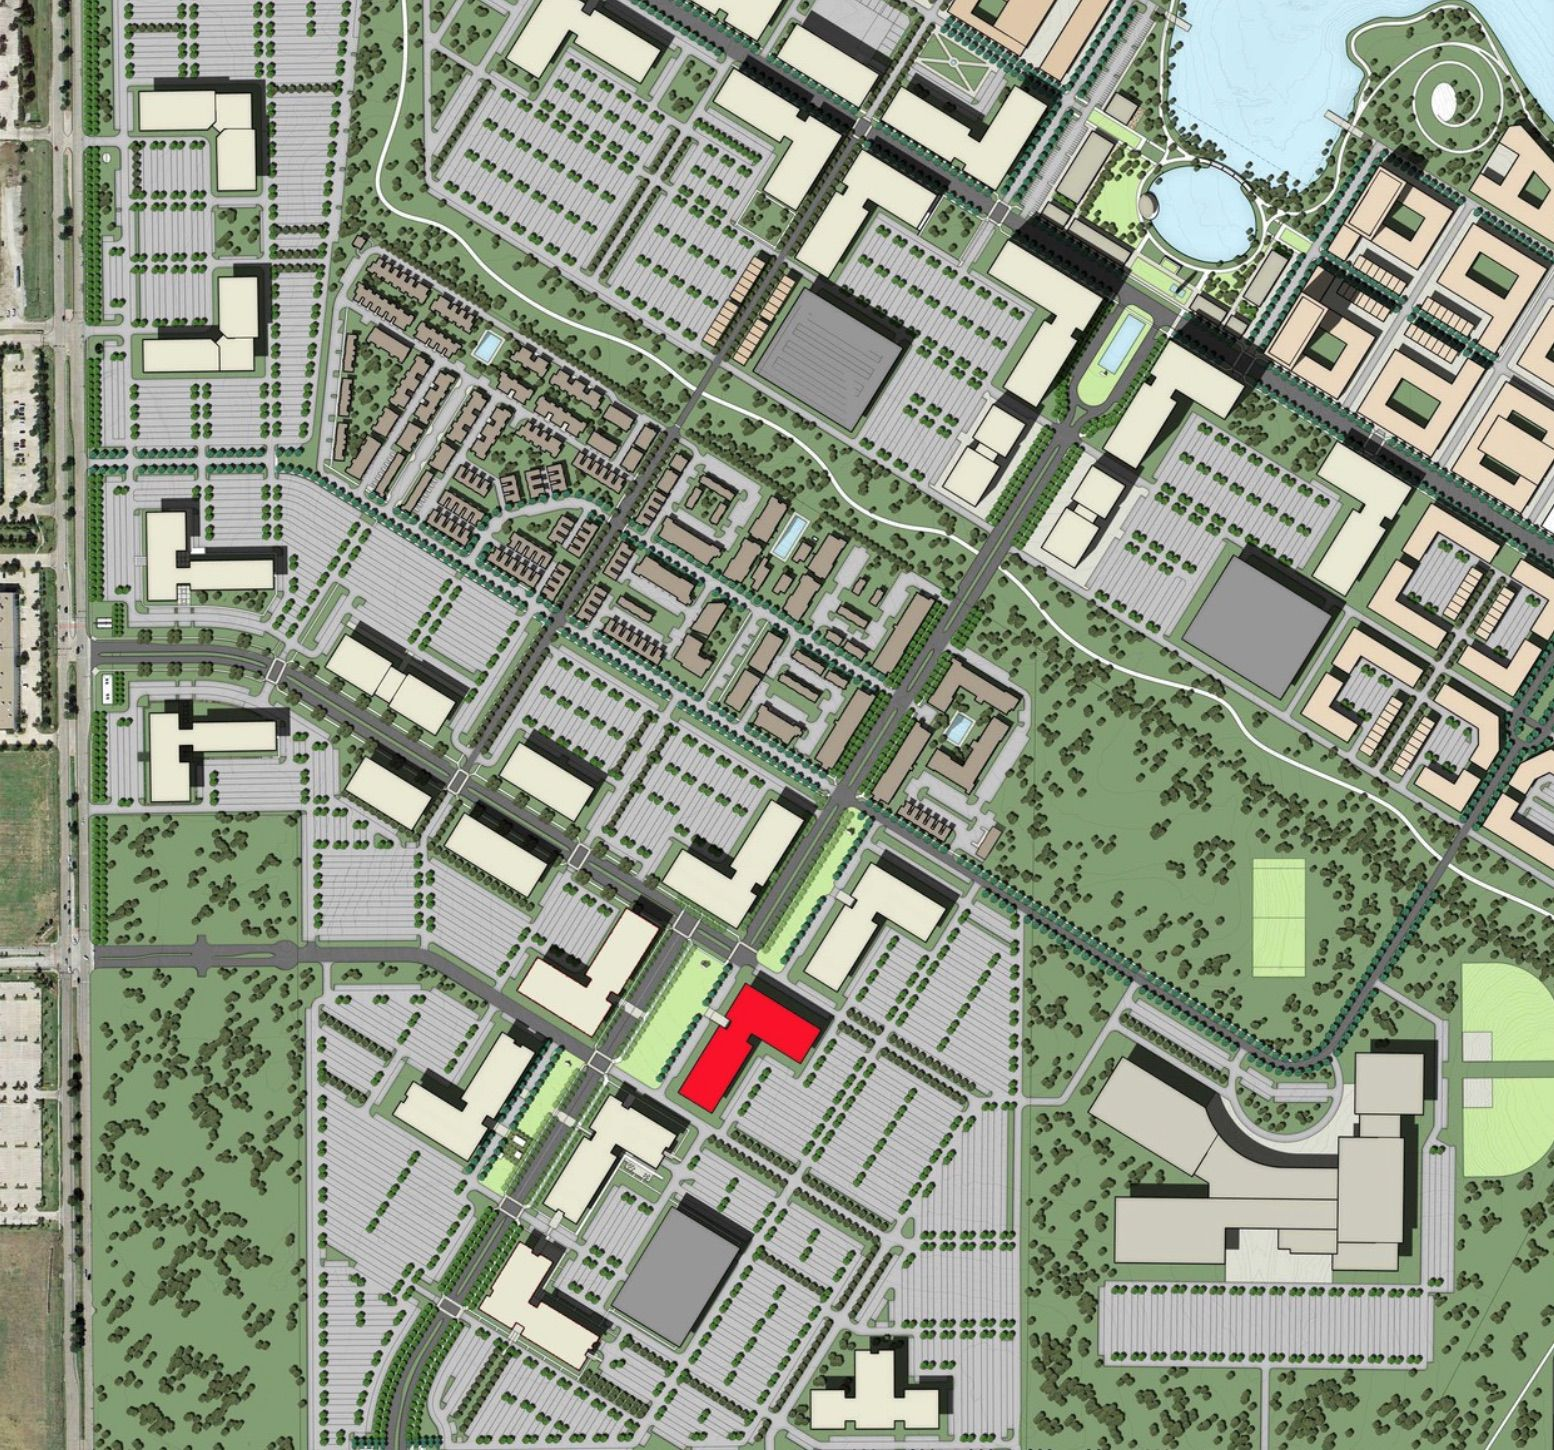 The building is planned on Cypress Waters Boulevard north of LBJ Freeway.